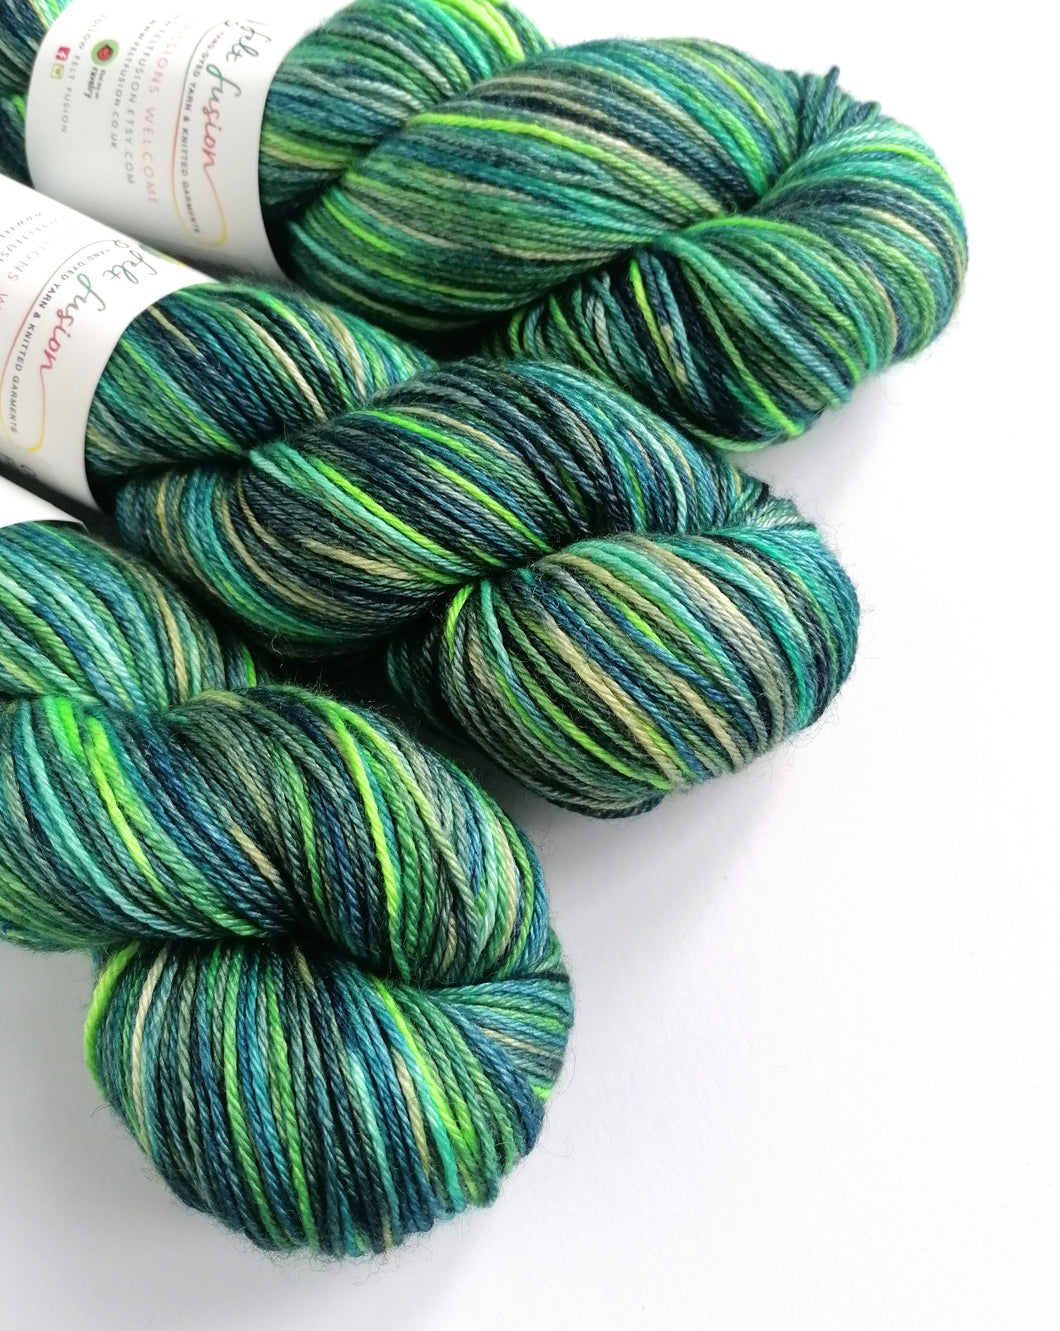 Finding Crush, hand dyed on superwash BFL/silk 4ply/fingering weight.